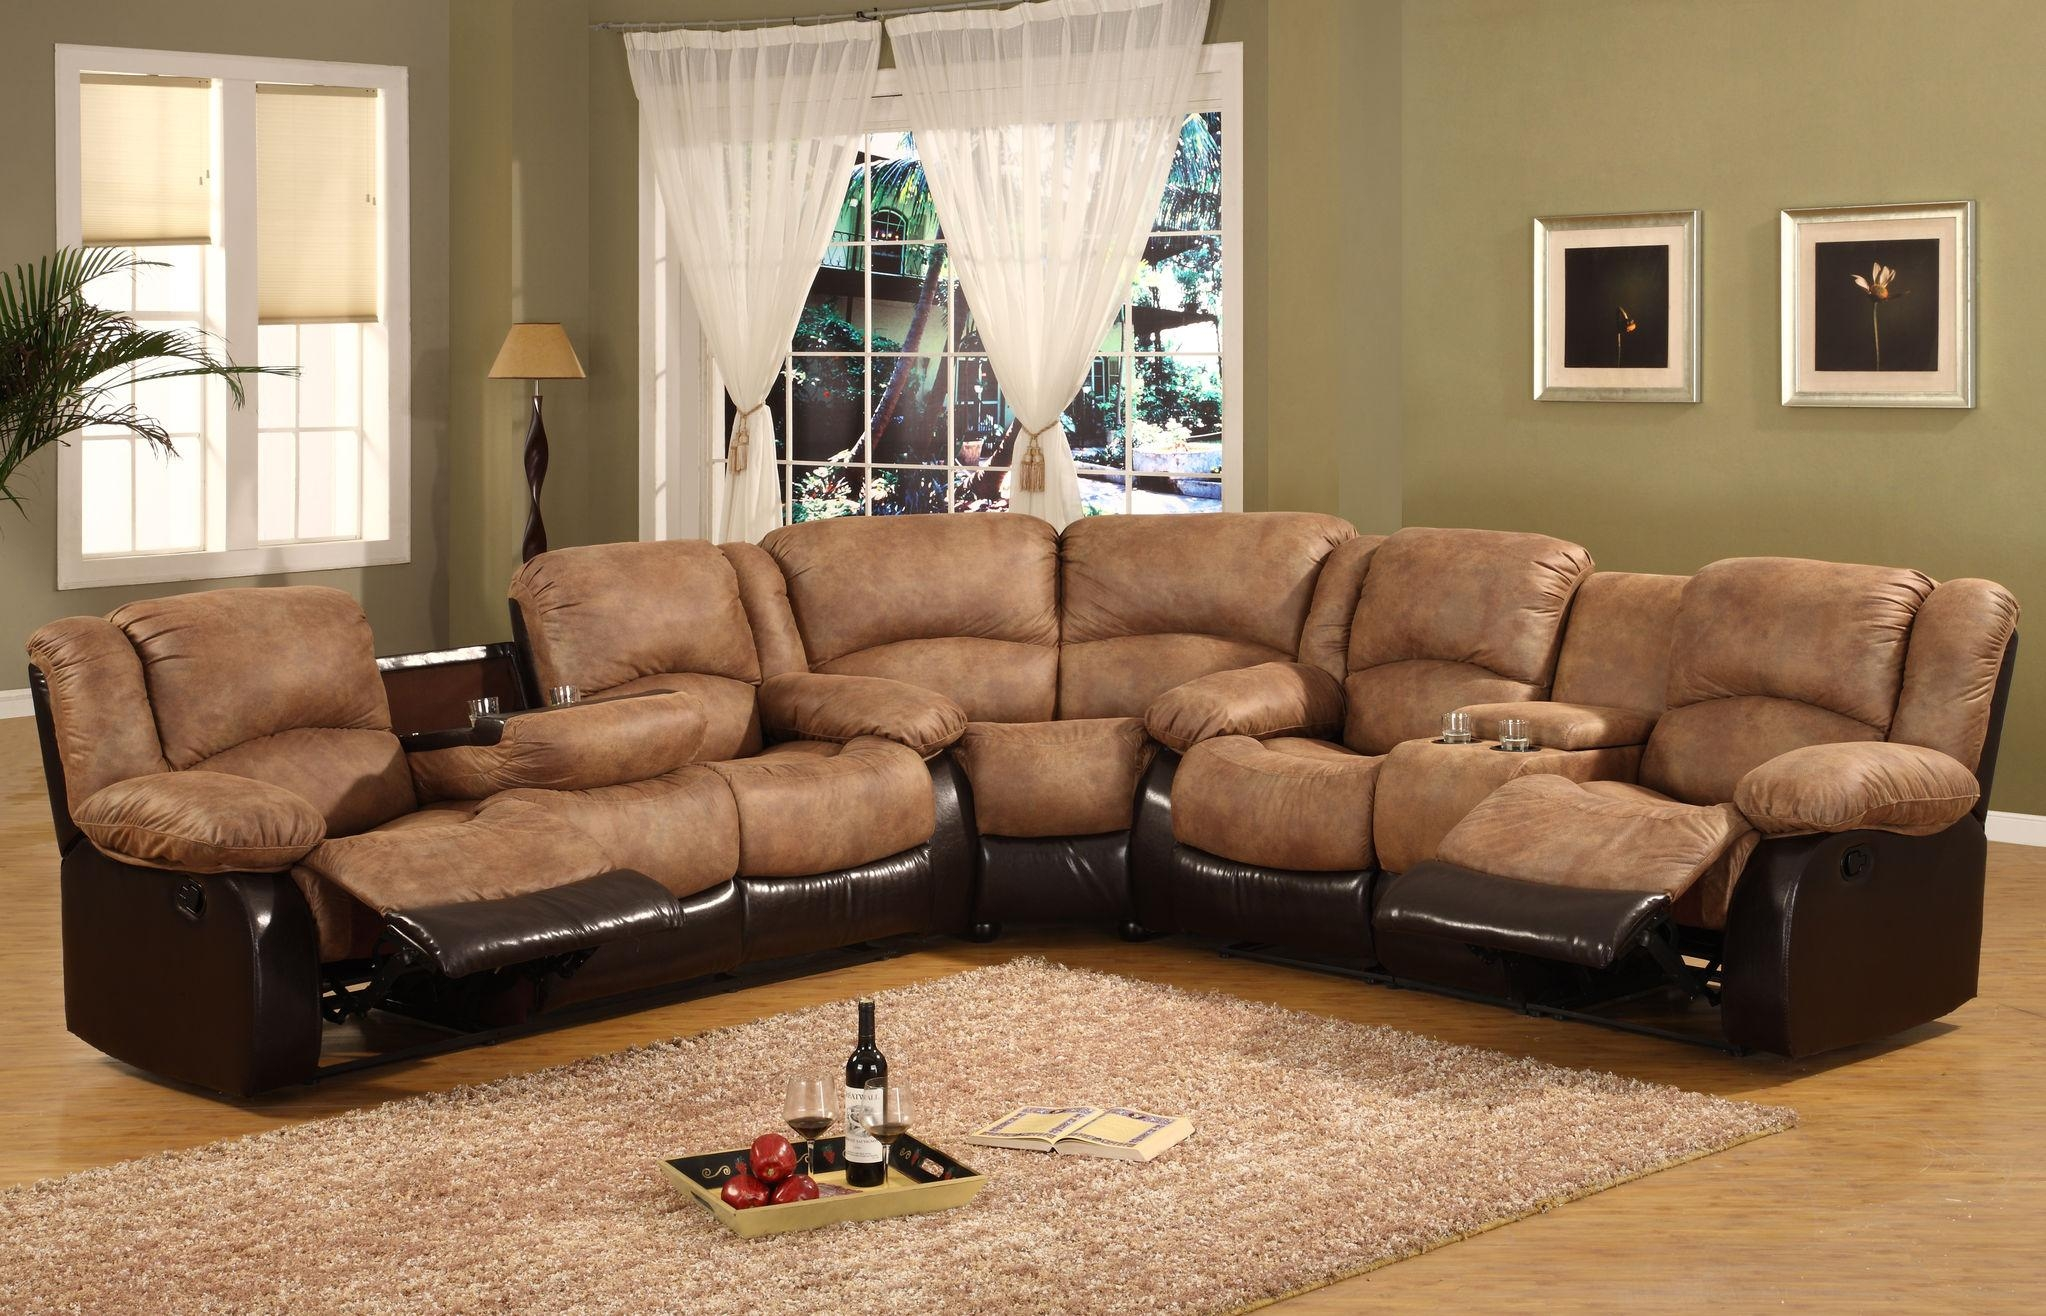 Fabric Sectional Sofas Sale – S3Net – Sectional Sofas Sale : S3Net Within Sectinal Sofas (View 11 of 20)